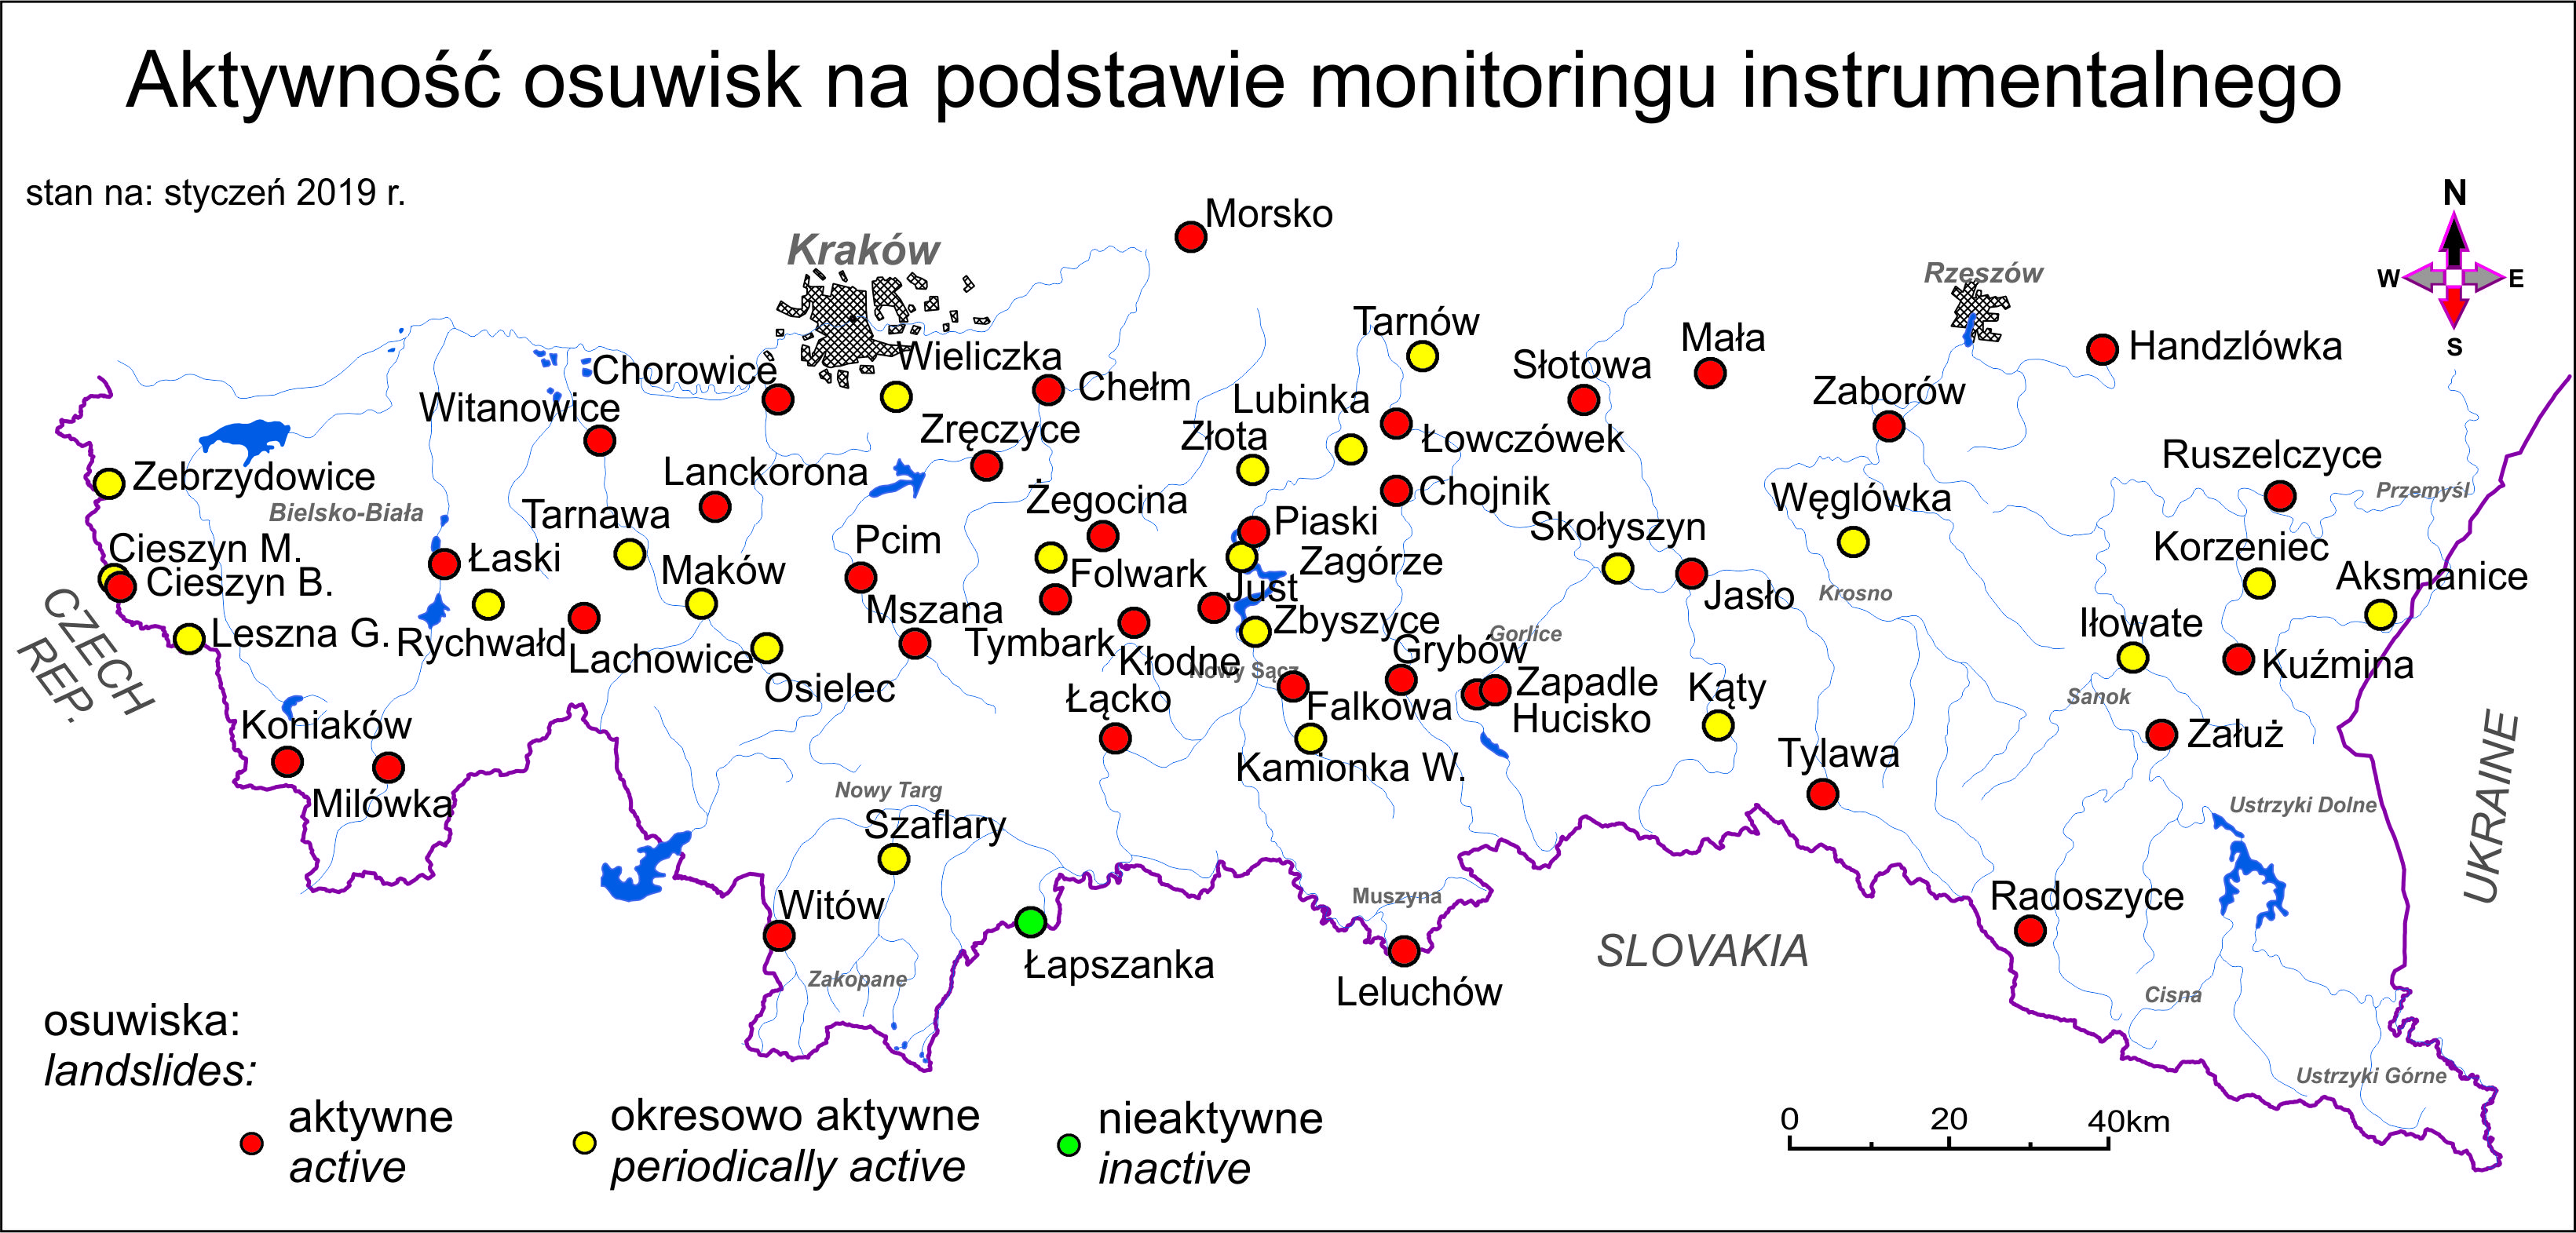 monitoring osuwisk 2019